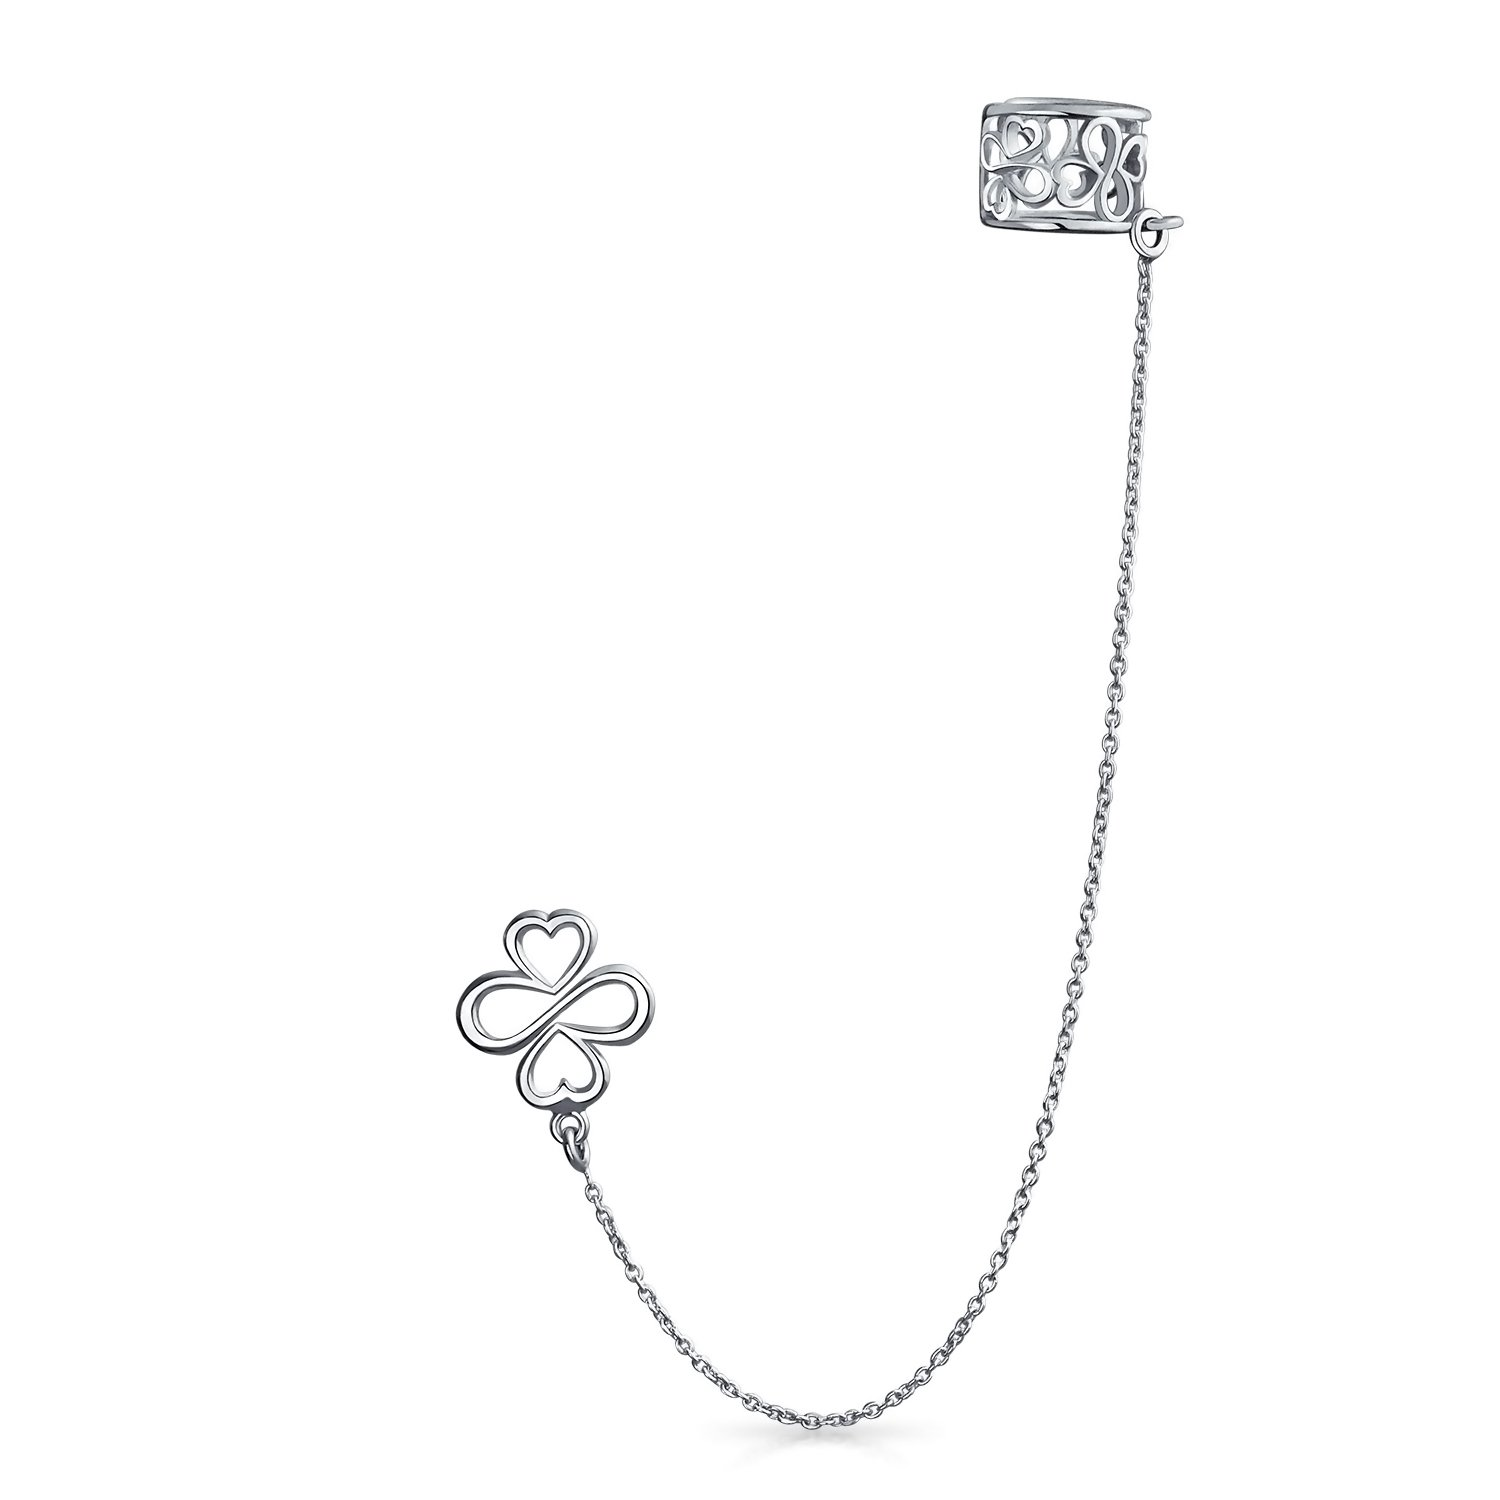 AYLLU We Are One Ear Cuff Sterling Silver One Piece.